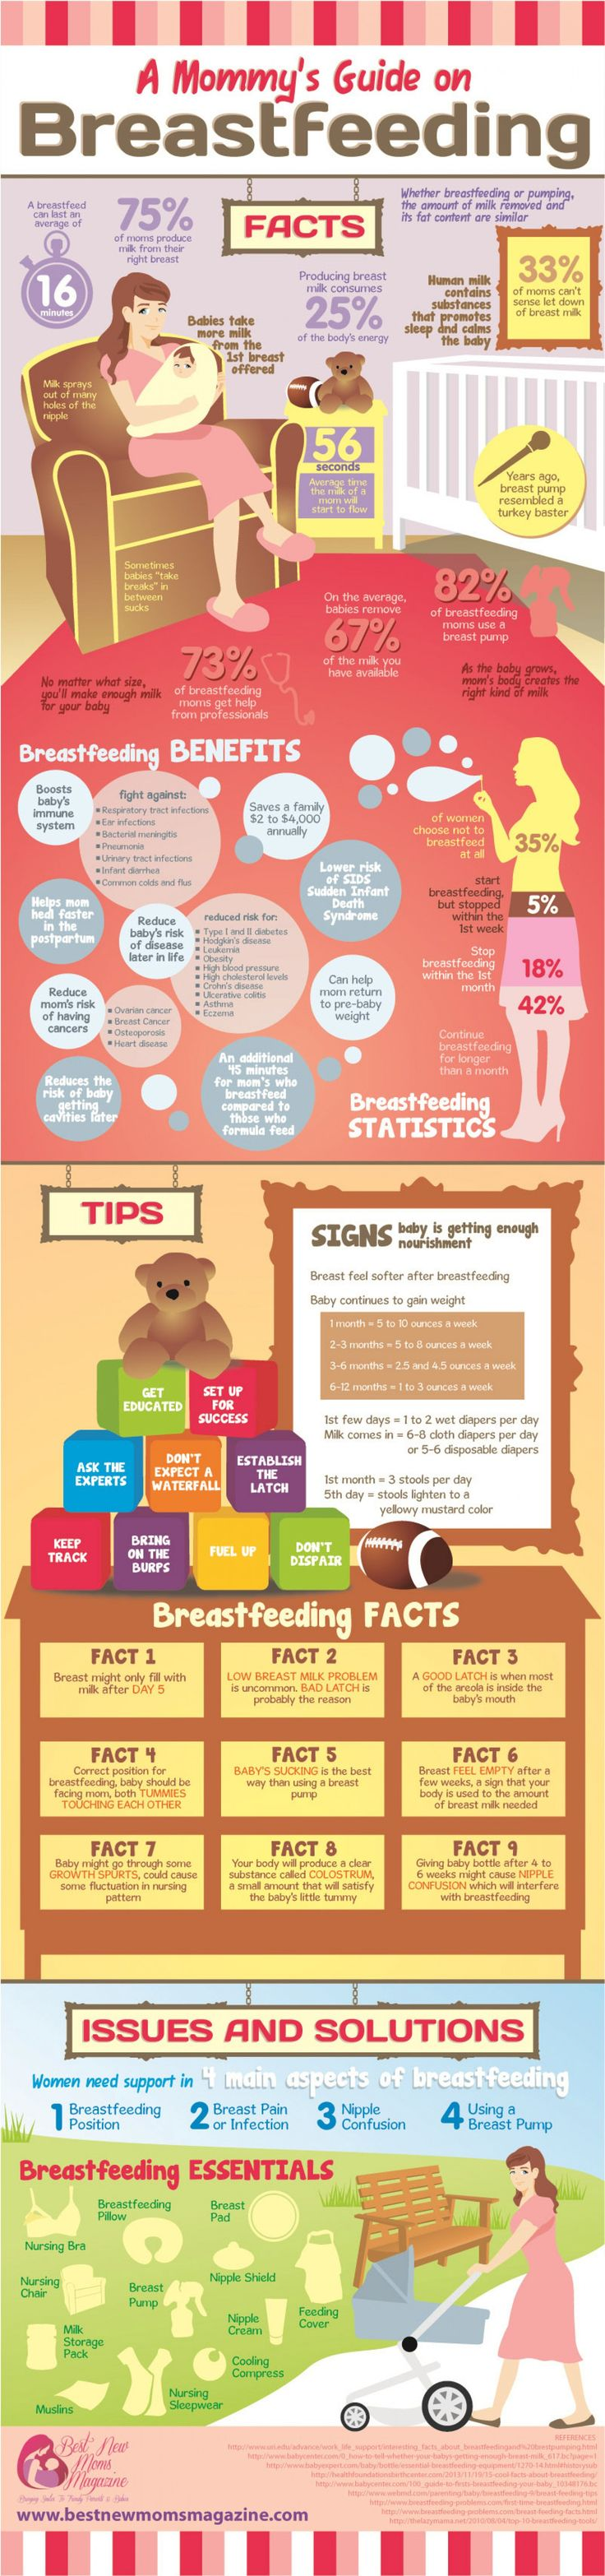 A Mommy's Guide on Breastfeeding Infographic